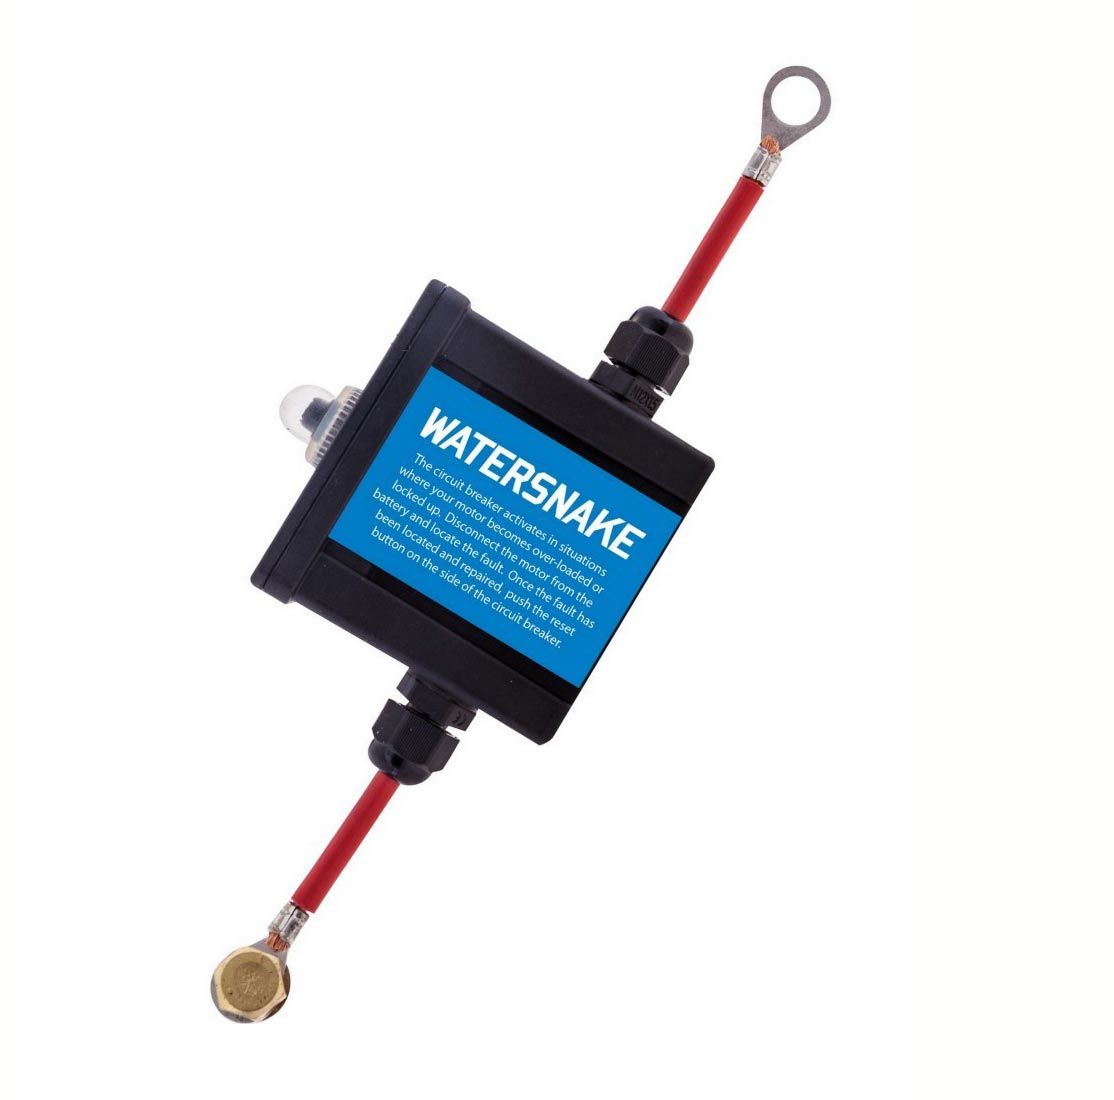 Watersnake 50 amp circuit breaker protects watersnake for Motor operated circuit breaker